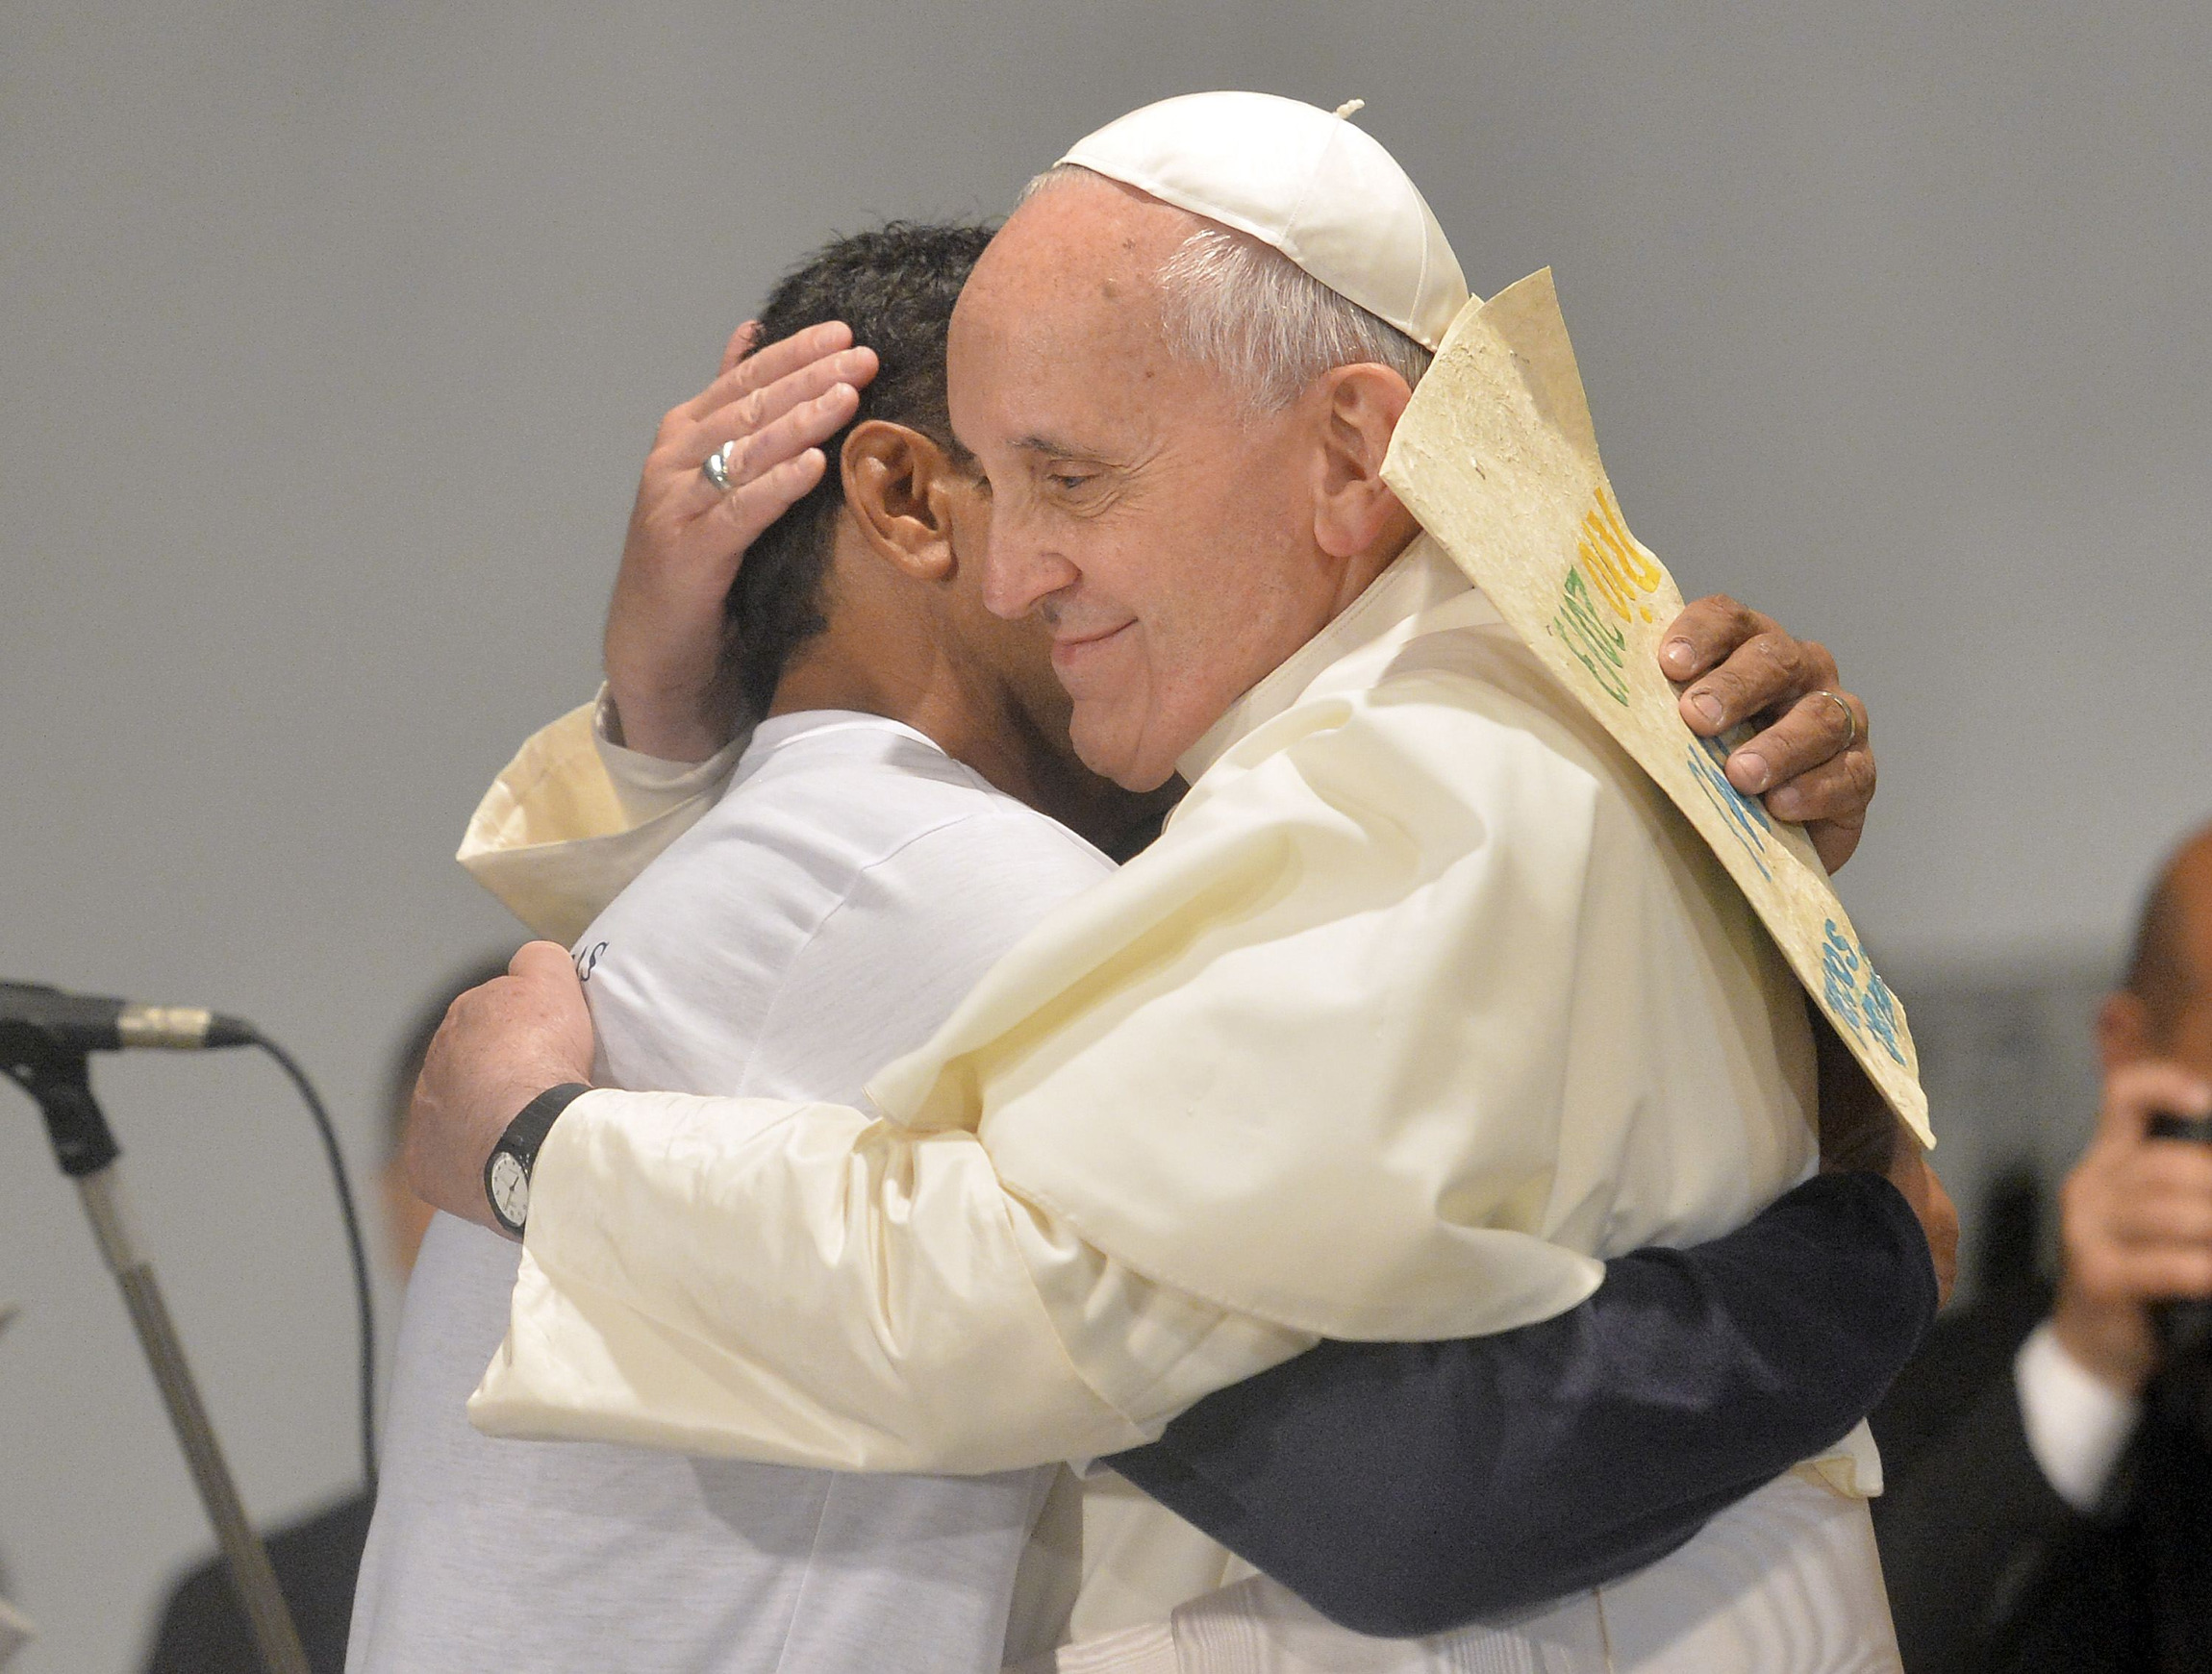 Pope Francis embraces a patient at St. Francis of Assisi Hospital in Rio de Janeiro